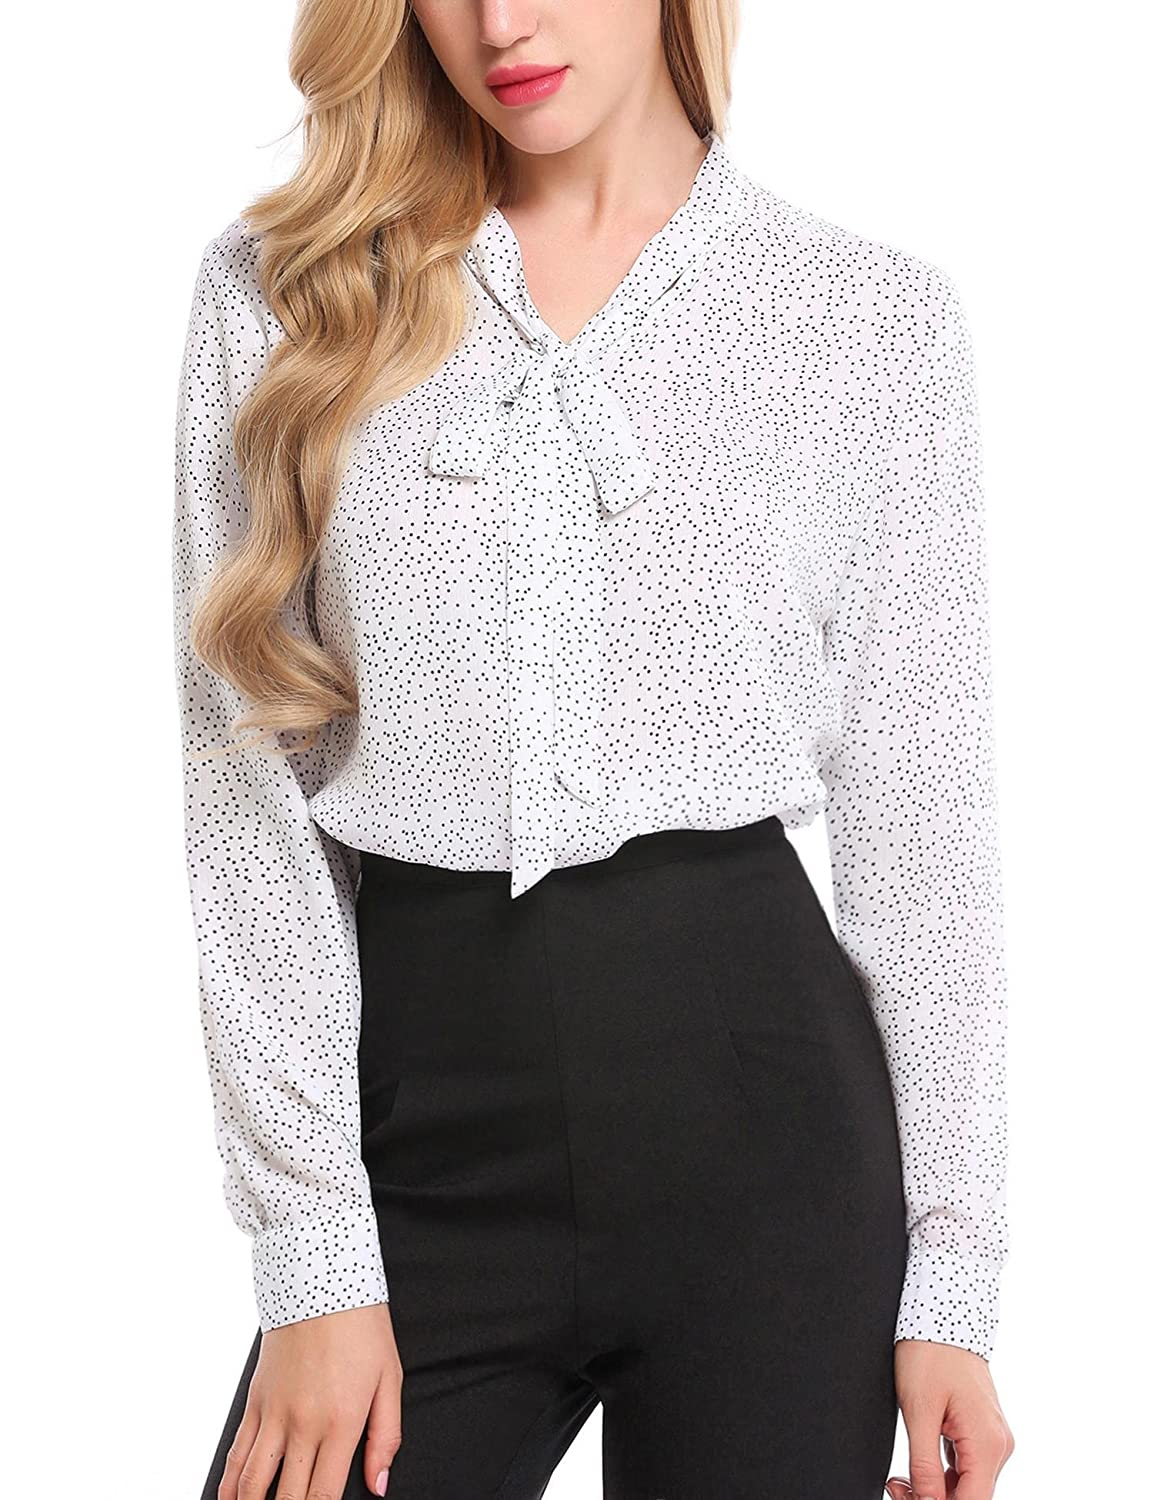 1d3ec1bbcccd8 Top 10 wholesale Ladies Tie Front Blouse - Chinabrands.com